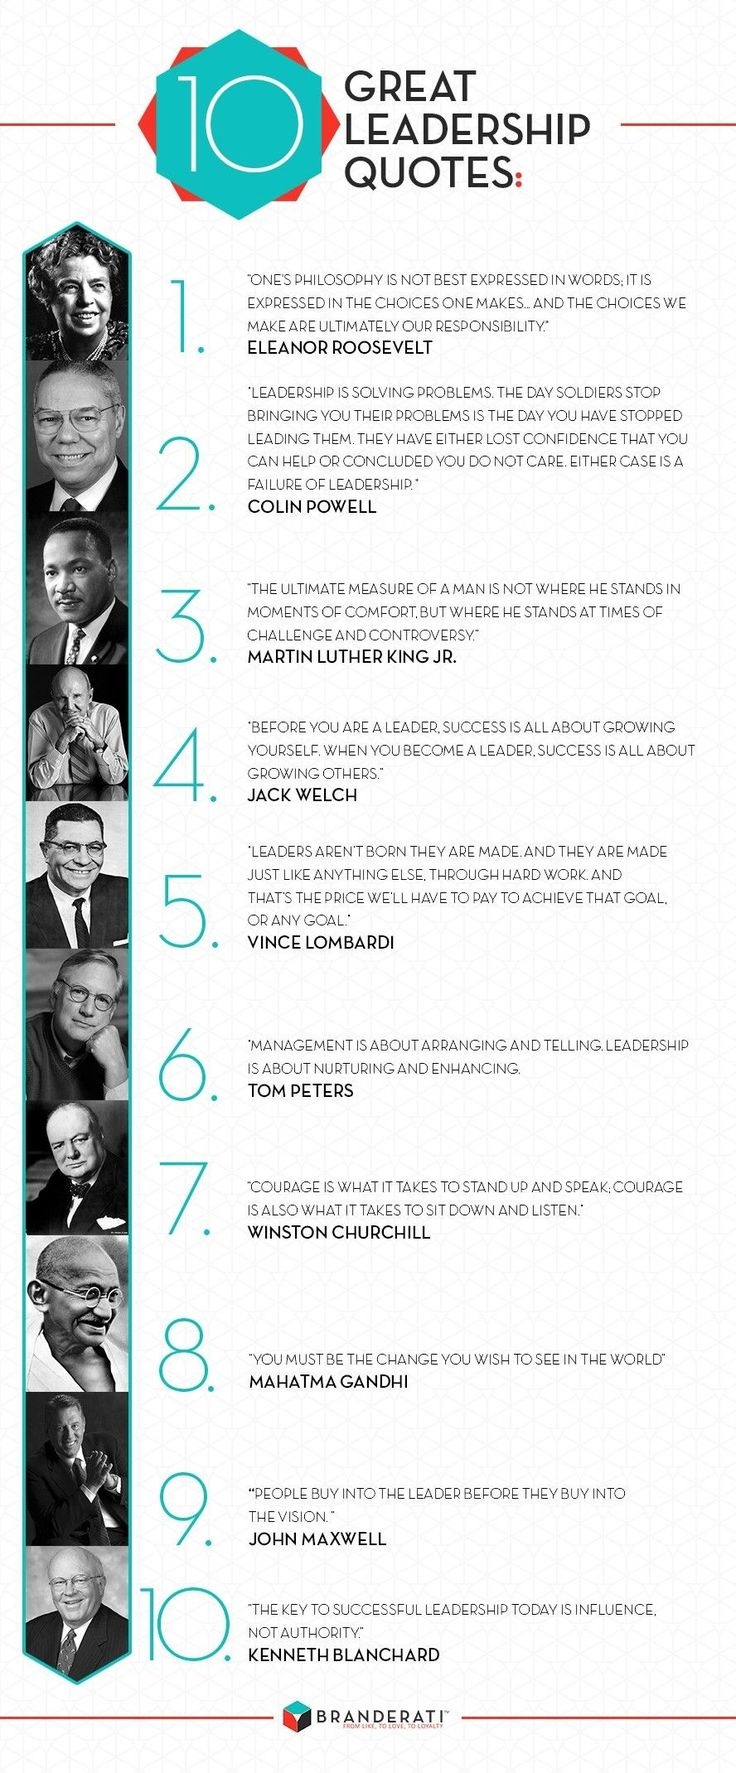 10 Great Leadership Quotes